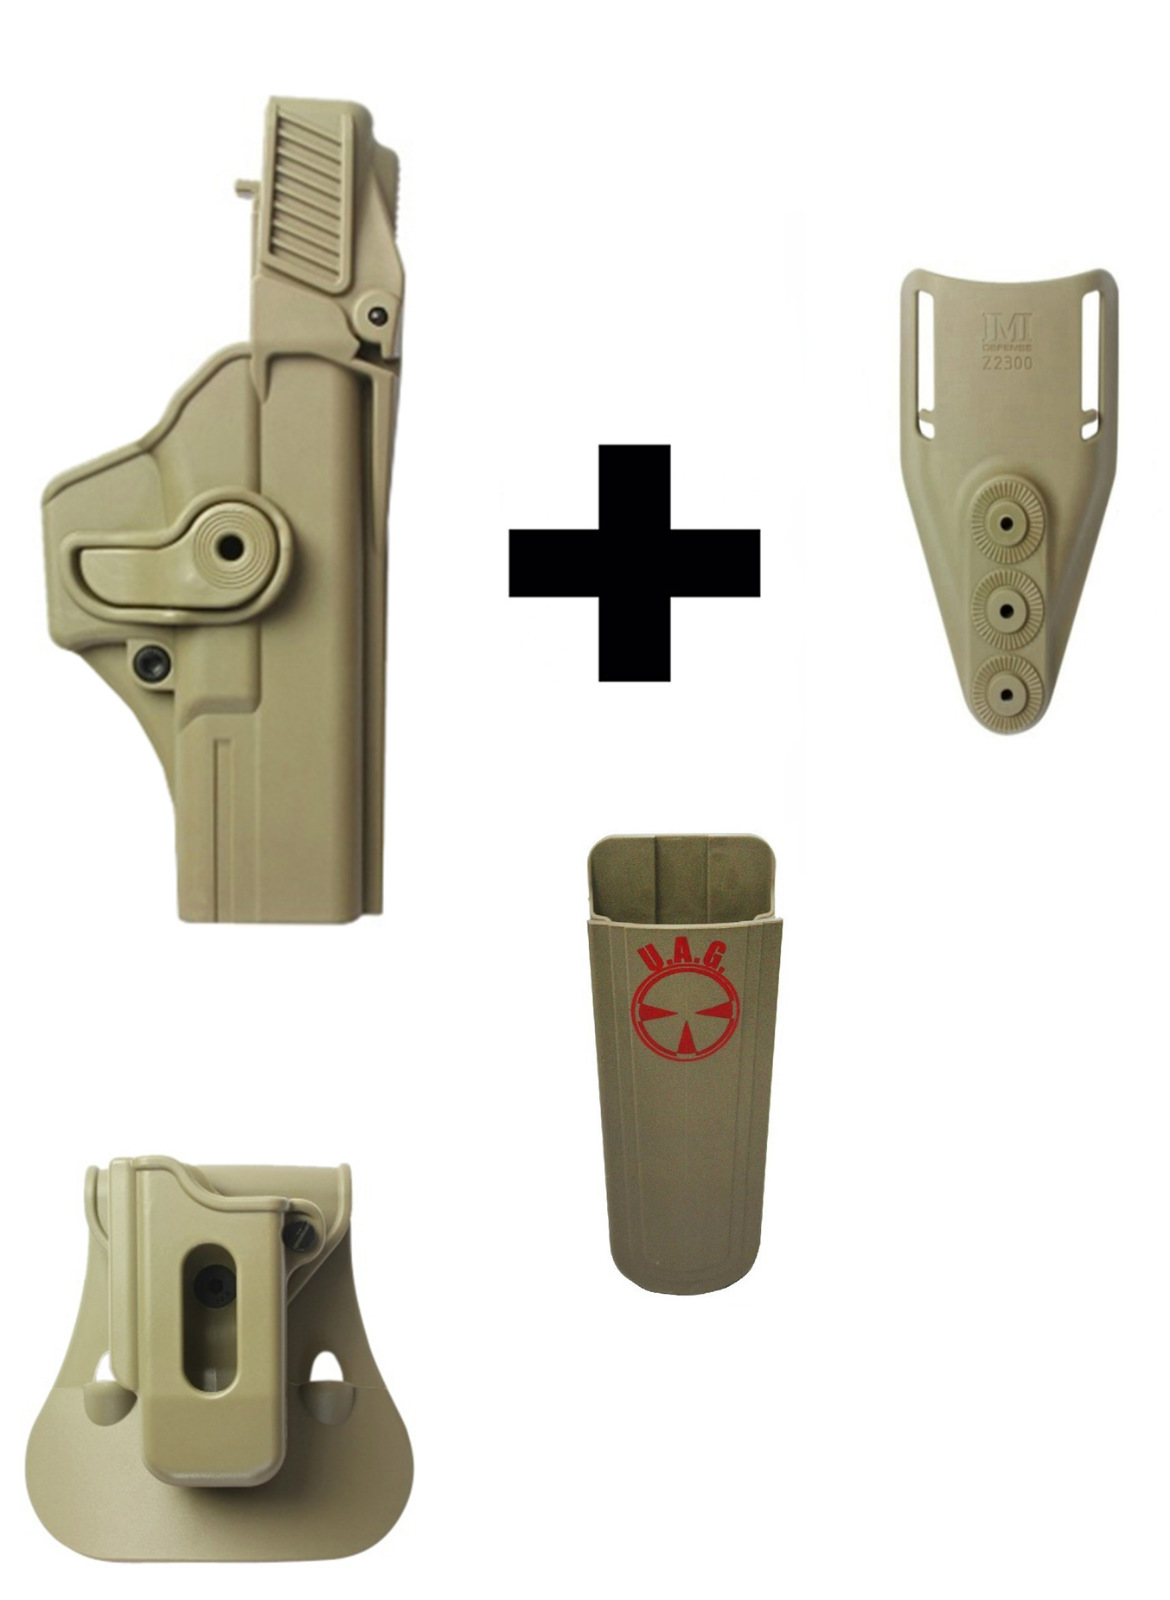 IMI Defense ZSP08 Single Mag Pouch & Paddle + Z1410 Level 3 360� Rotate Holster Glock 17 22 31 Gen 4, Tan + Z2300 Low... by